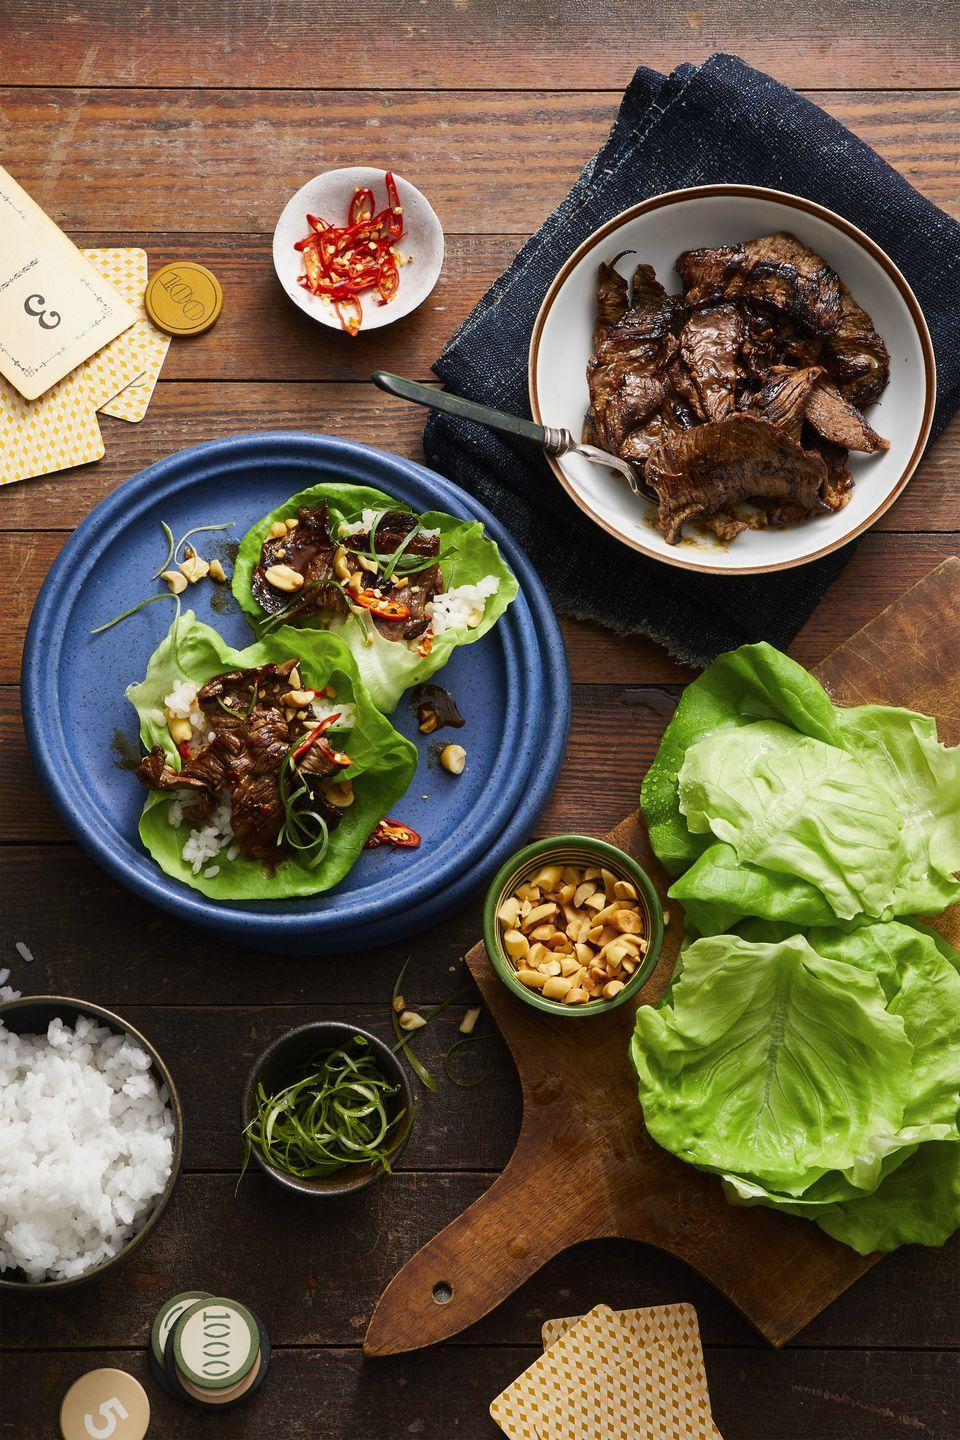 "<p>Create a healthy taco bar of your own with these customizable lettuce wraps. </p><p><em><a href=""https://www.goodhousekeeping.com/food-recipes/easy/a47669/korean-pineapple-beef-lettuce-wraps-recipe/"" rel=""nofollow noopener"" target=""_blank"" data-ylk=""slk:Get the recipe for Korean Pineapple Beef Lettuce Wraps »"" class=""link rapid-noclick-resp"">Get the recipe for Korean Pineapple Beef Lettuce Wraps »</a></em></p>"